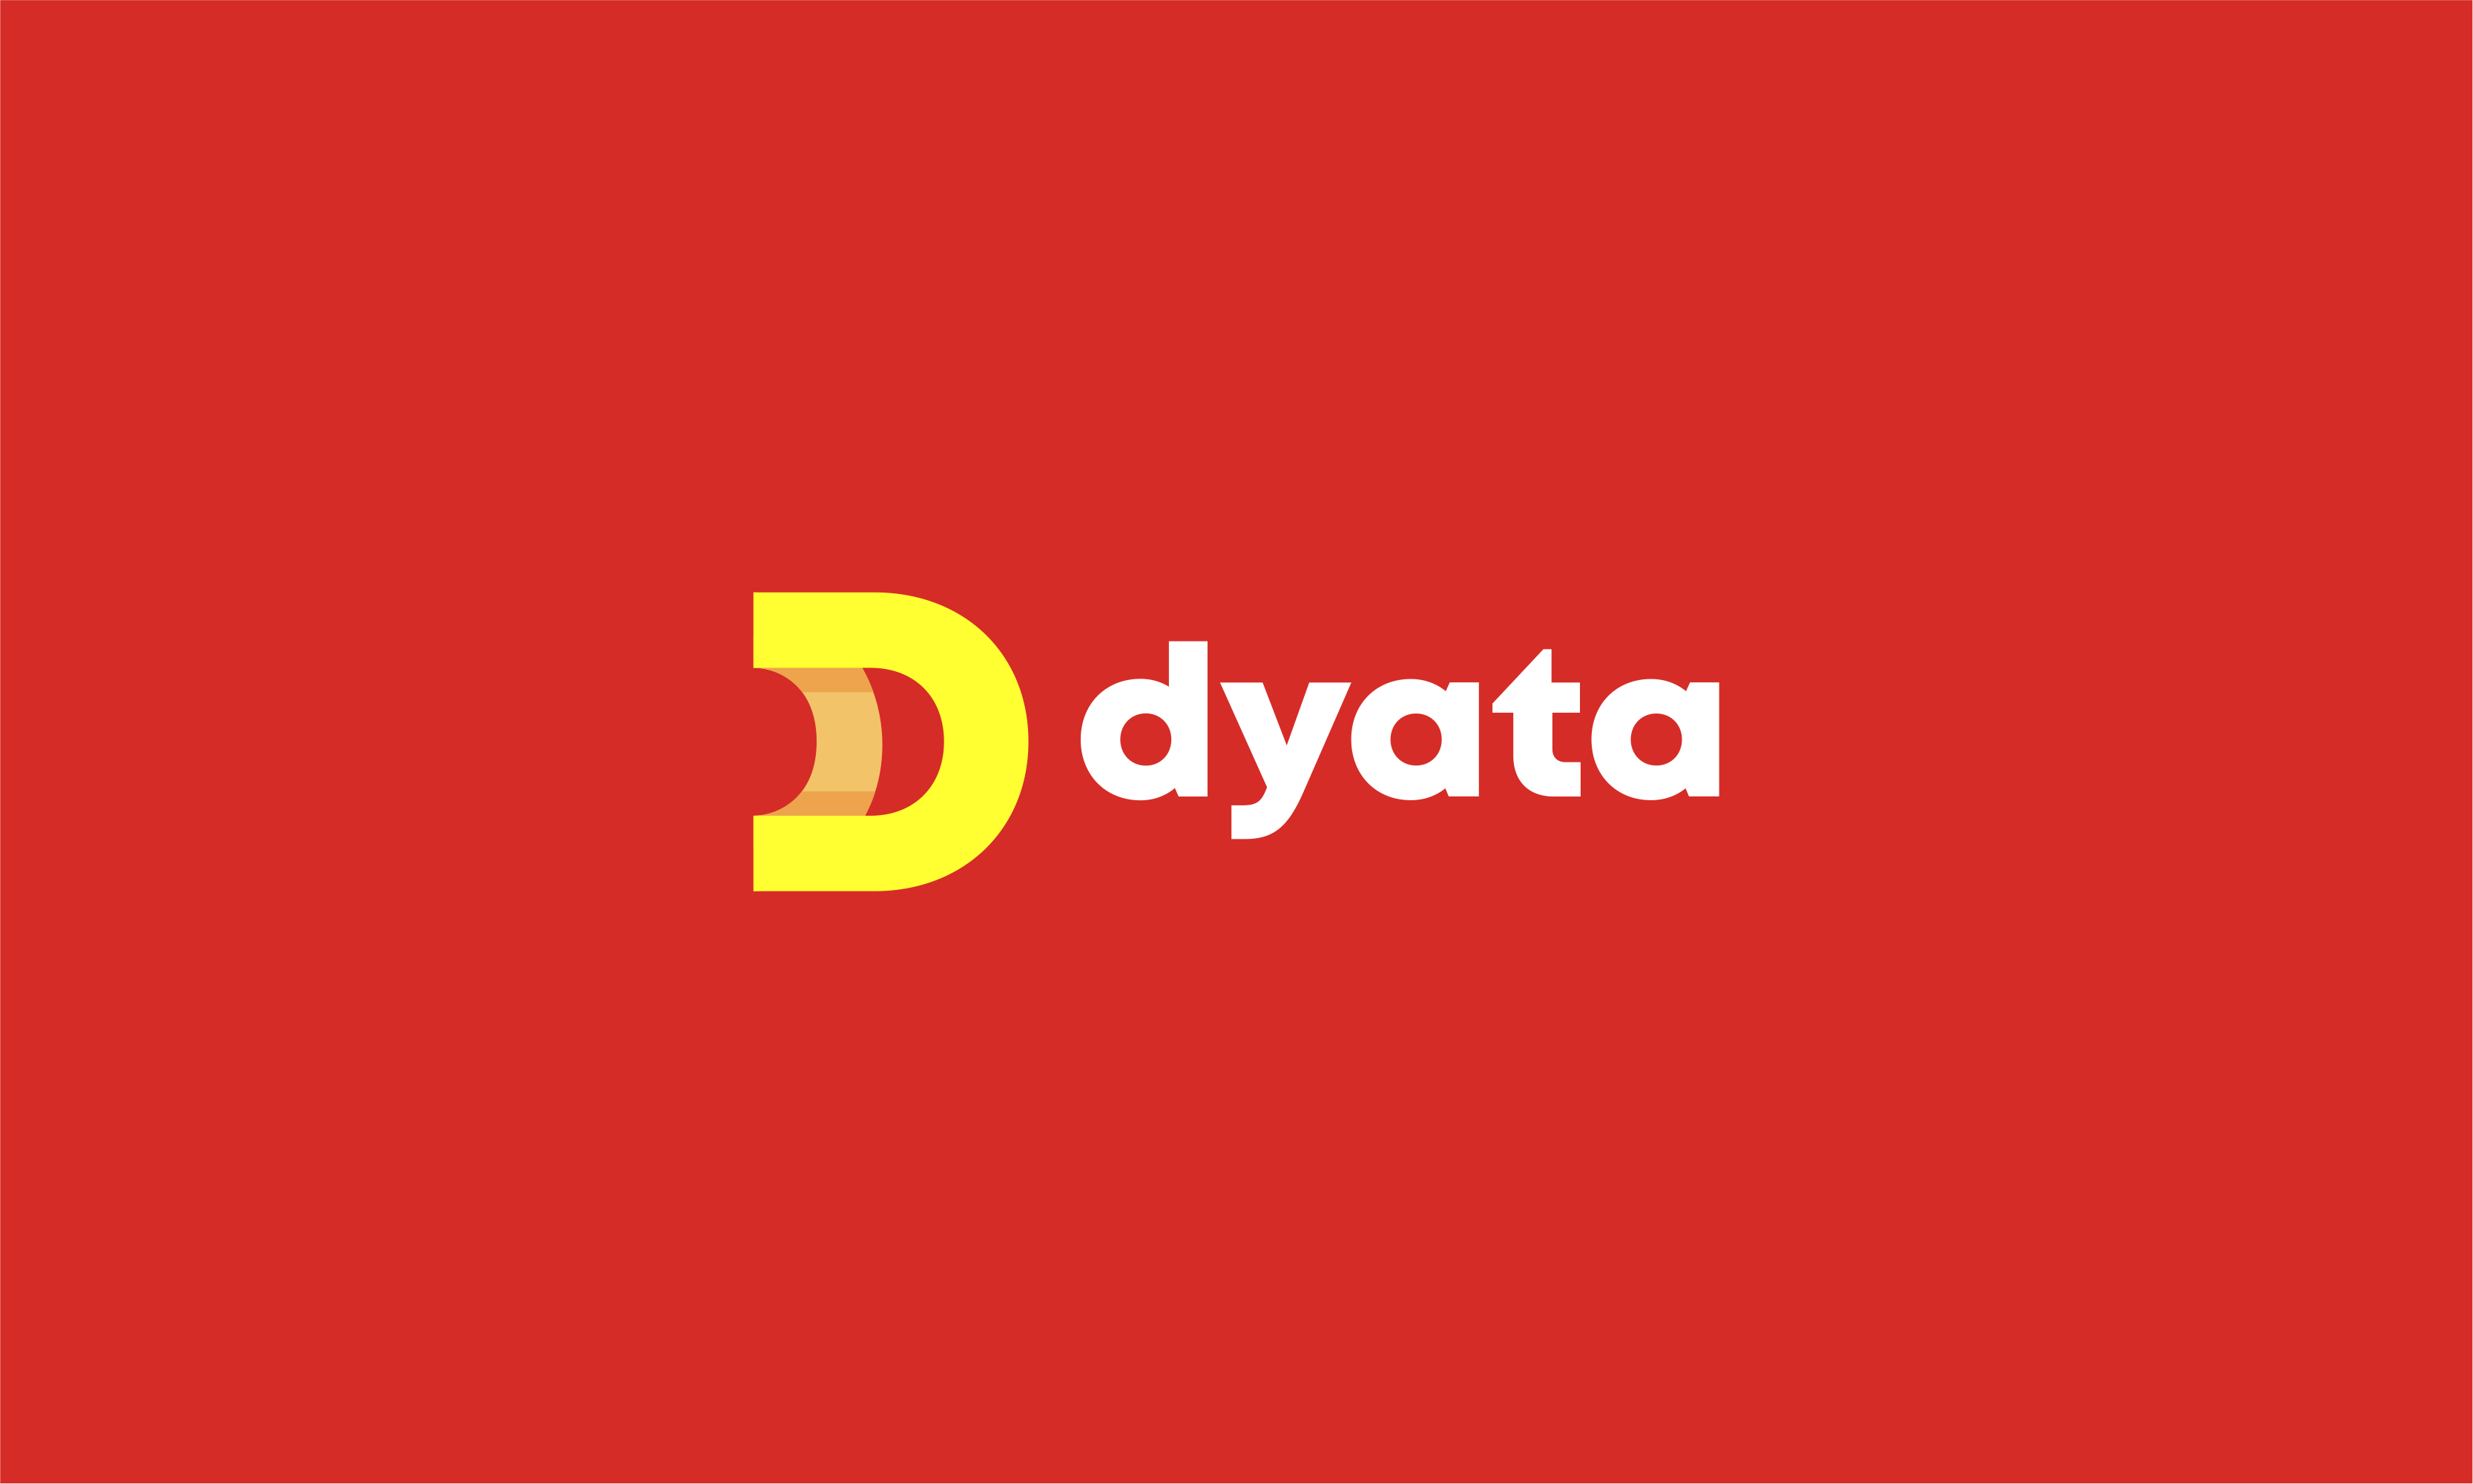 Dyata - E-commerce brand name for sale